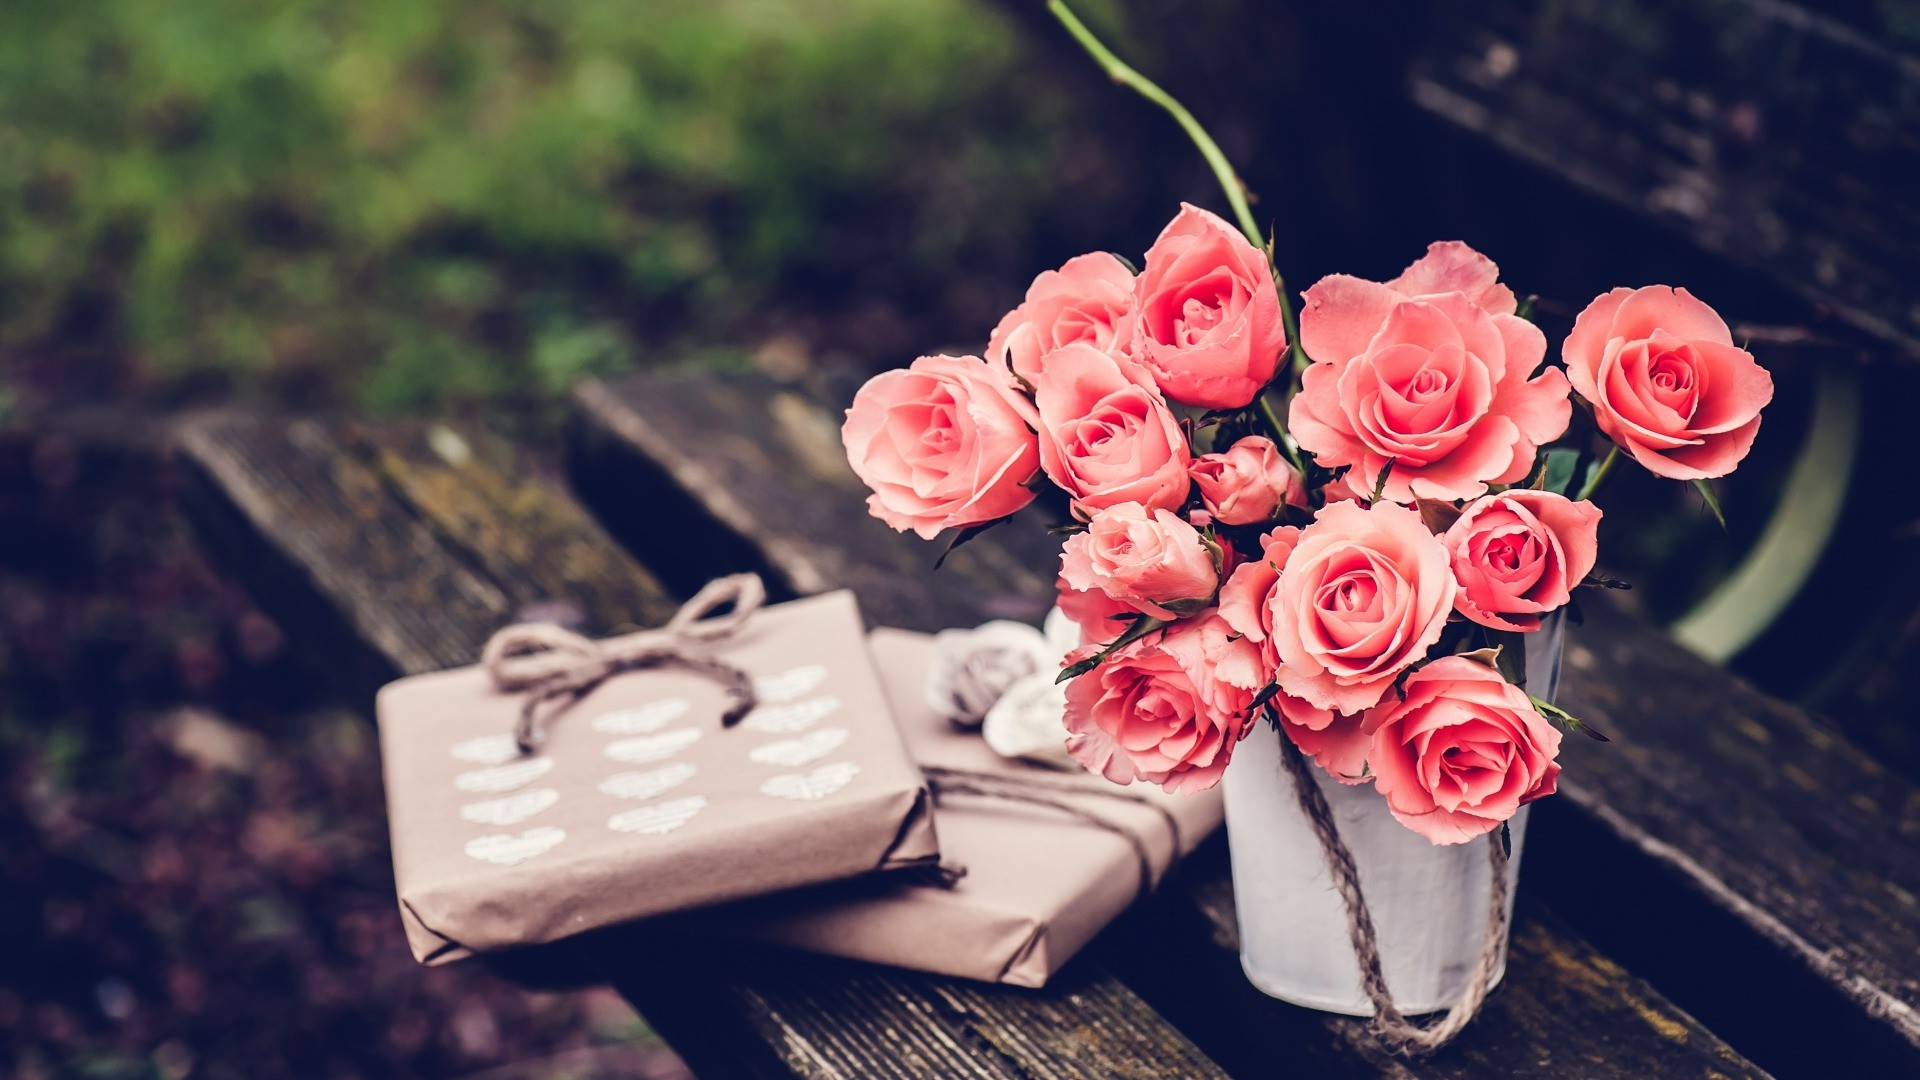 presents bench rose flowers bouquets wallpapers hd